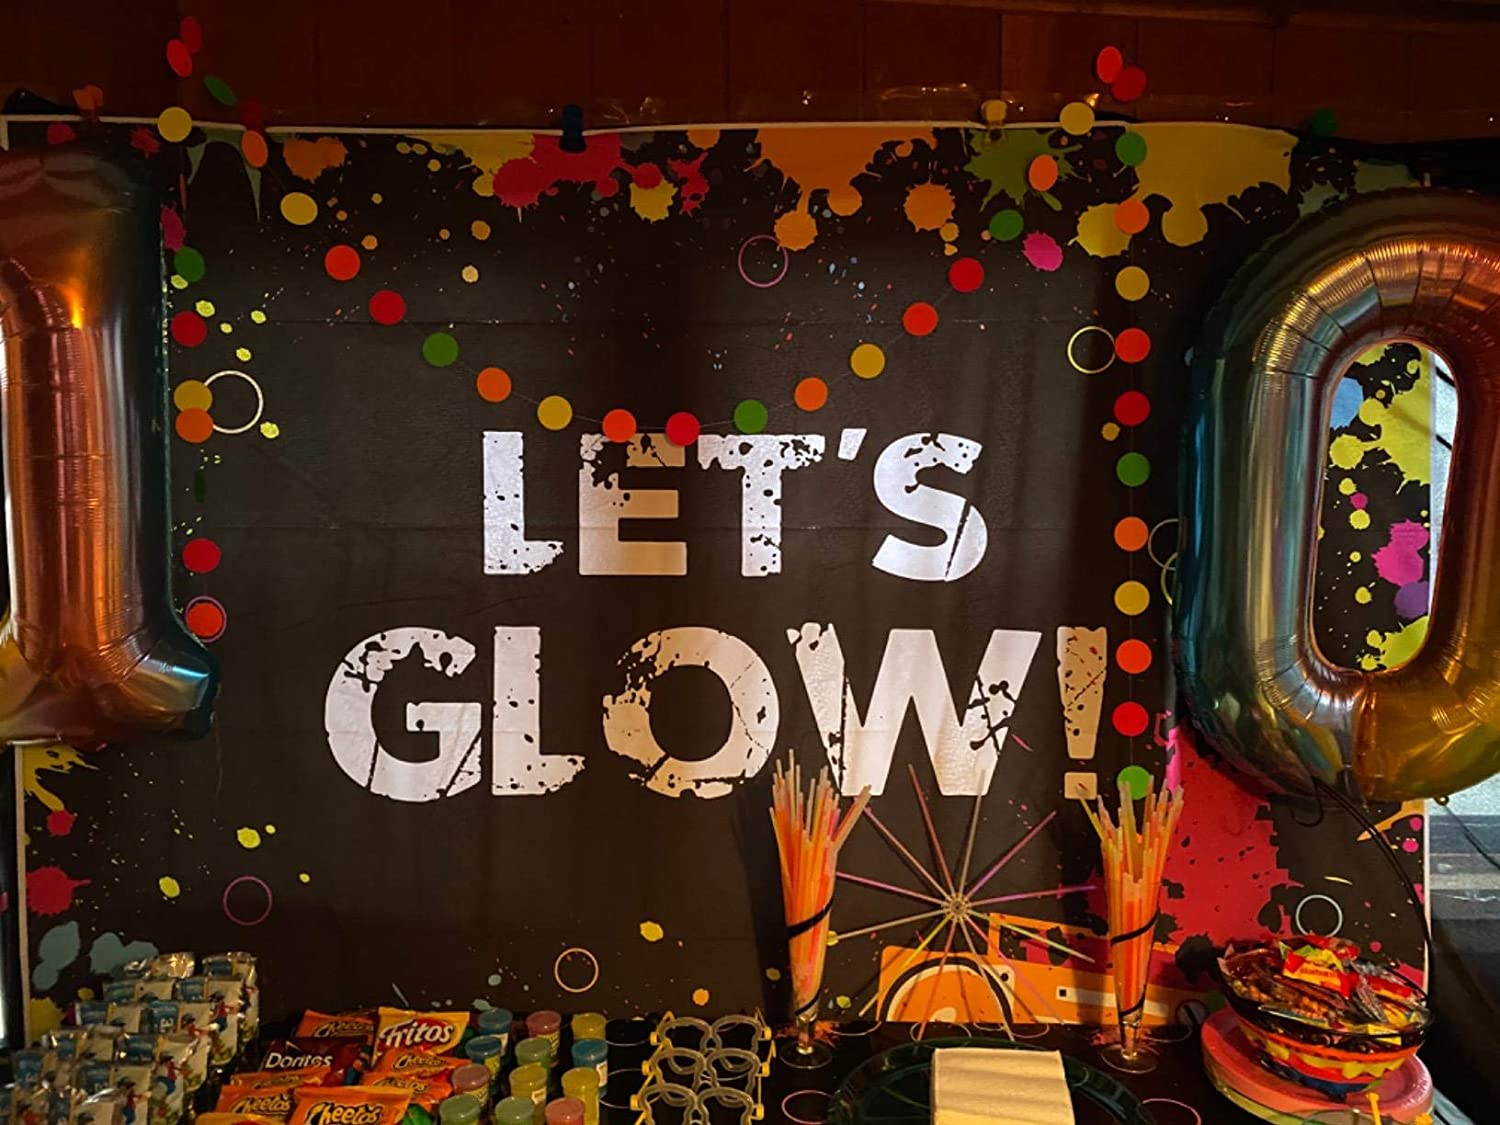 Daniu Glow Neon Party Backdrop Lets Glow Splatter Photography Background 7x5ft Vinyl Glowing Party Backdrops Banner Decoration Neon Party Supplies